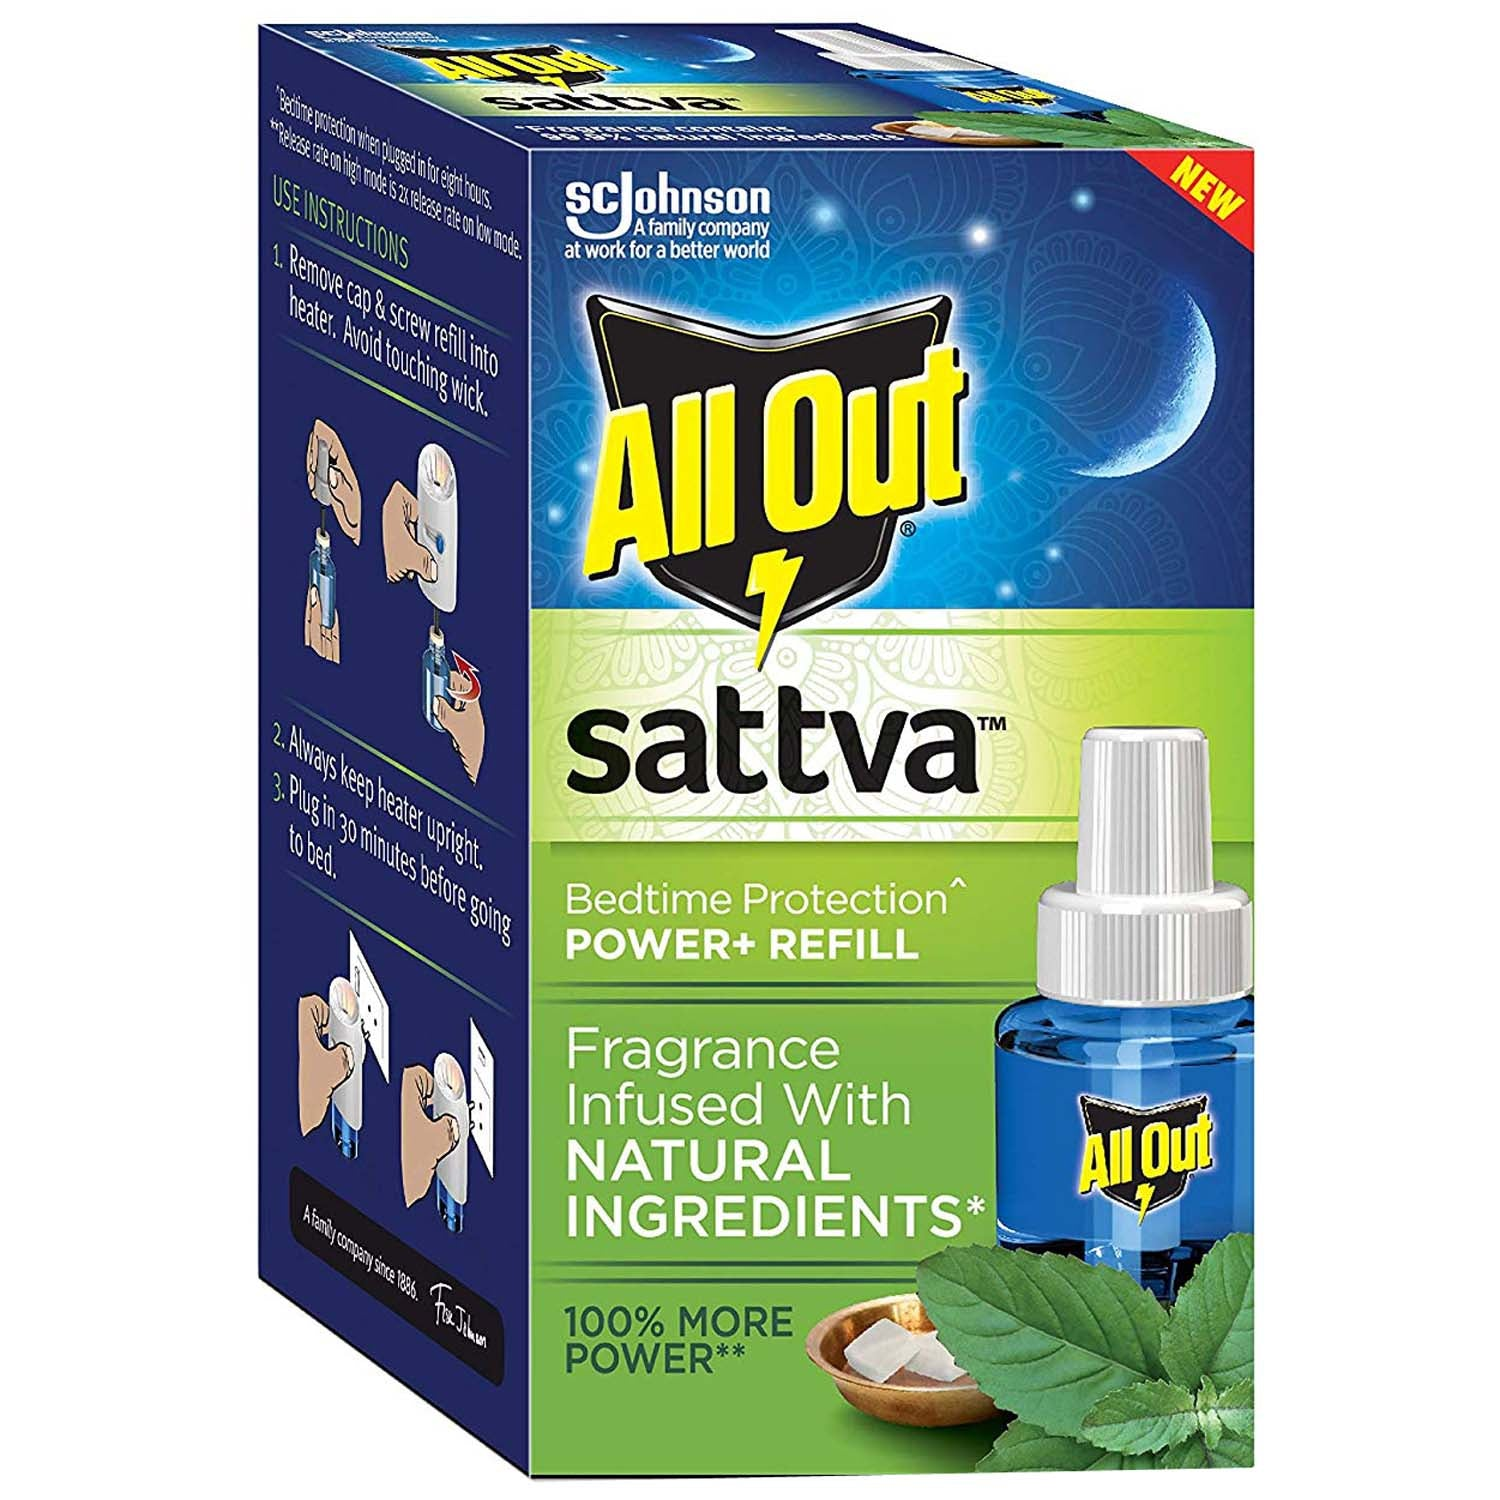 All Out Sattva Refill Machine + 45 ml Refill